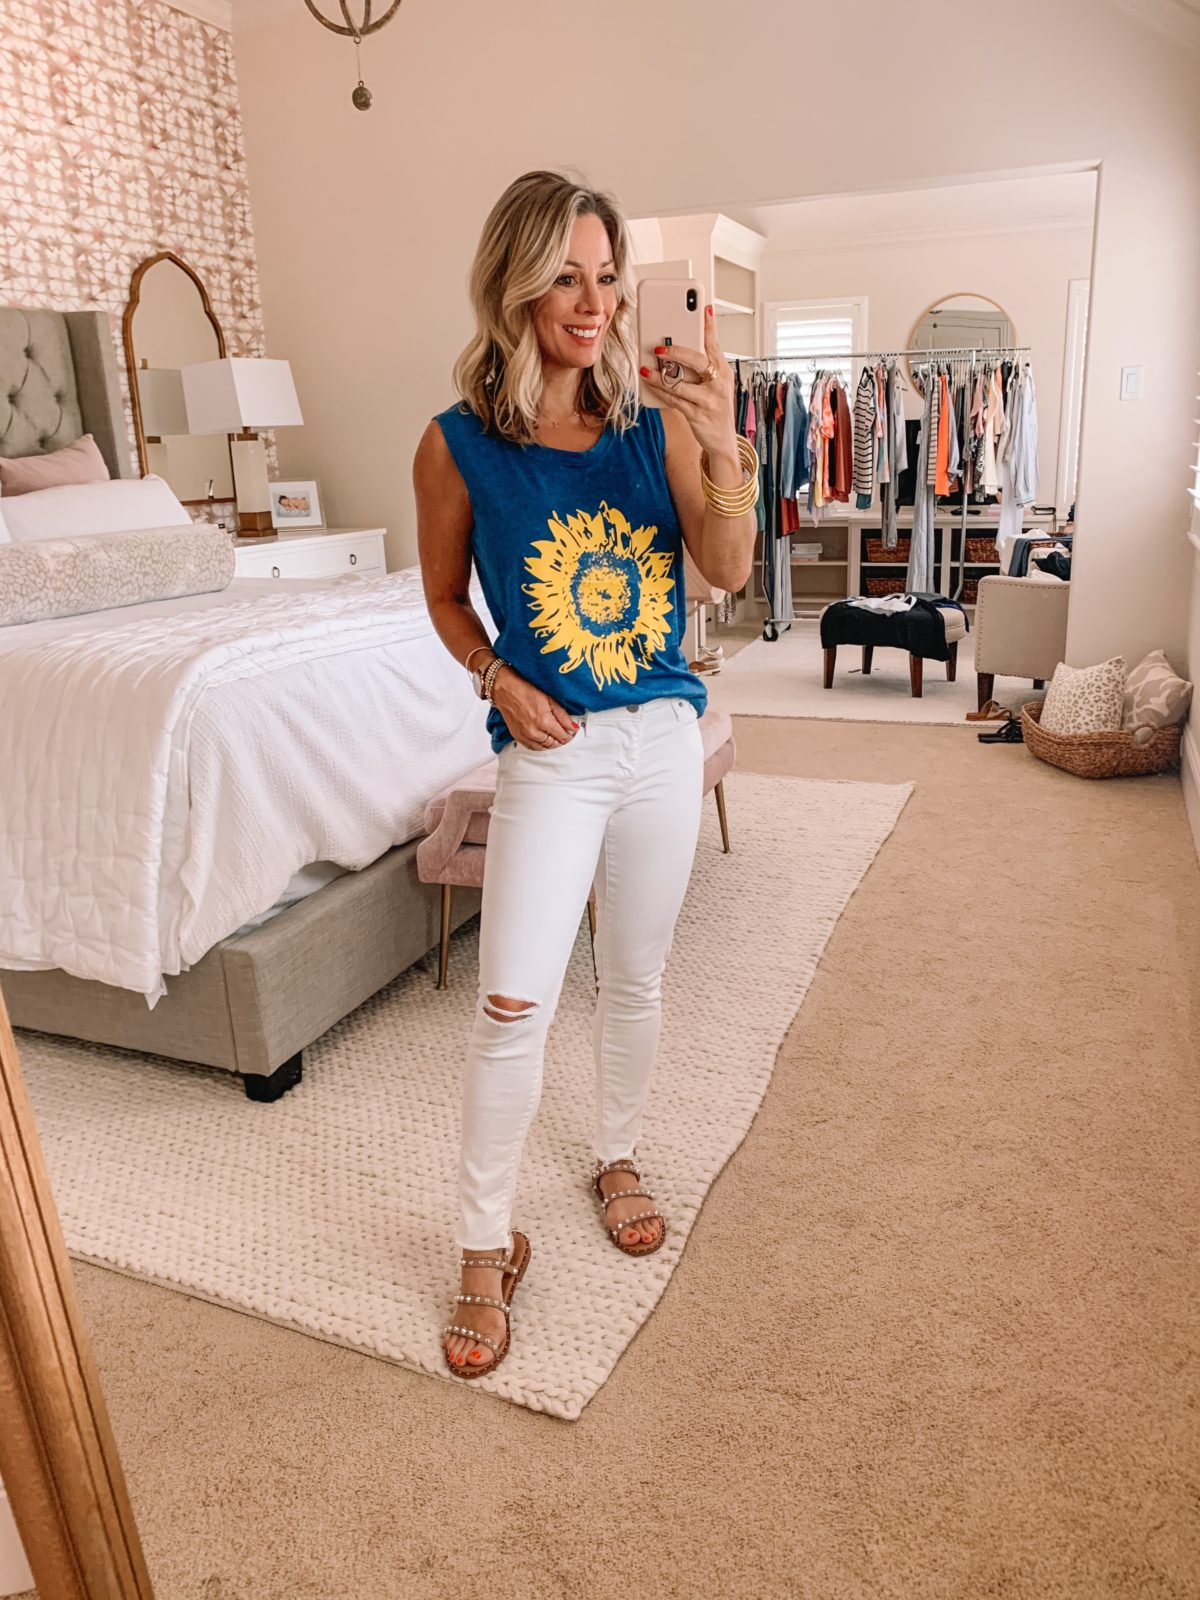 Amazon Fashion Finds, Sunflower Tank, White Denim Jeans, Studded Sandals